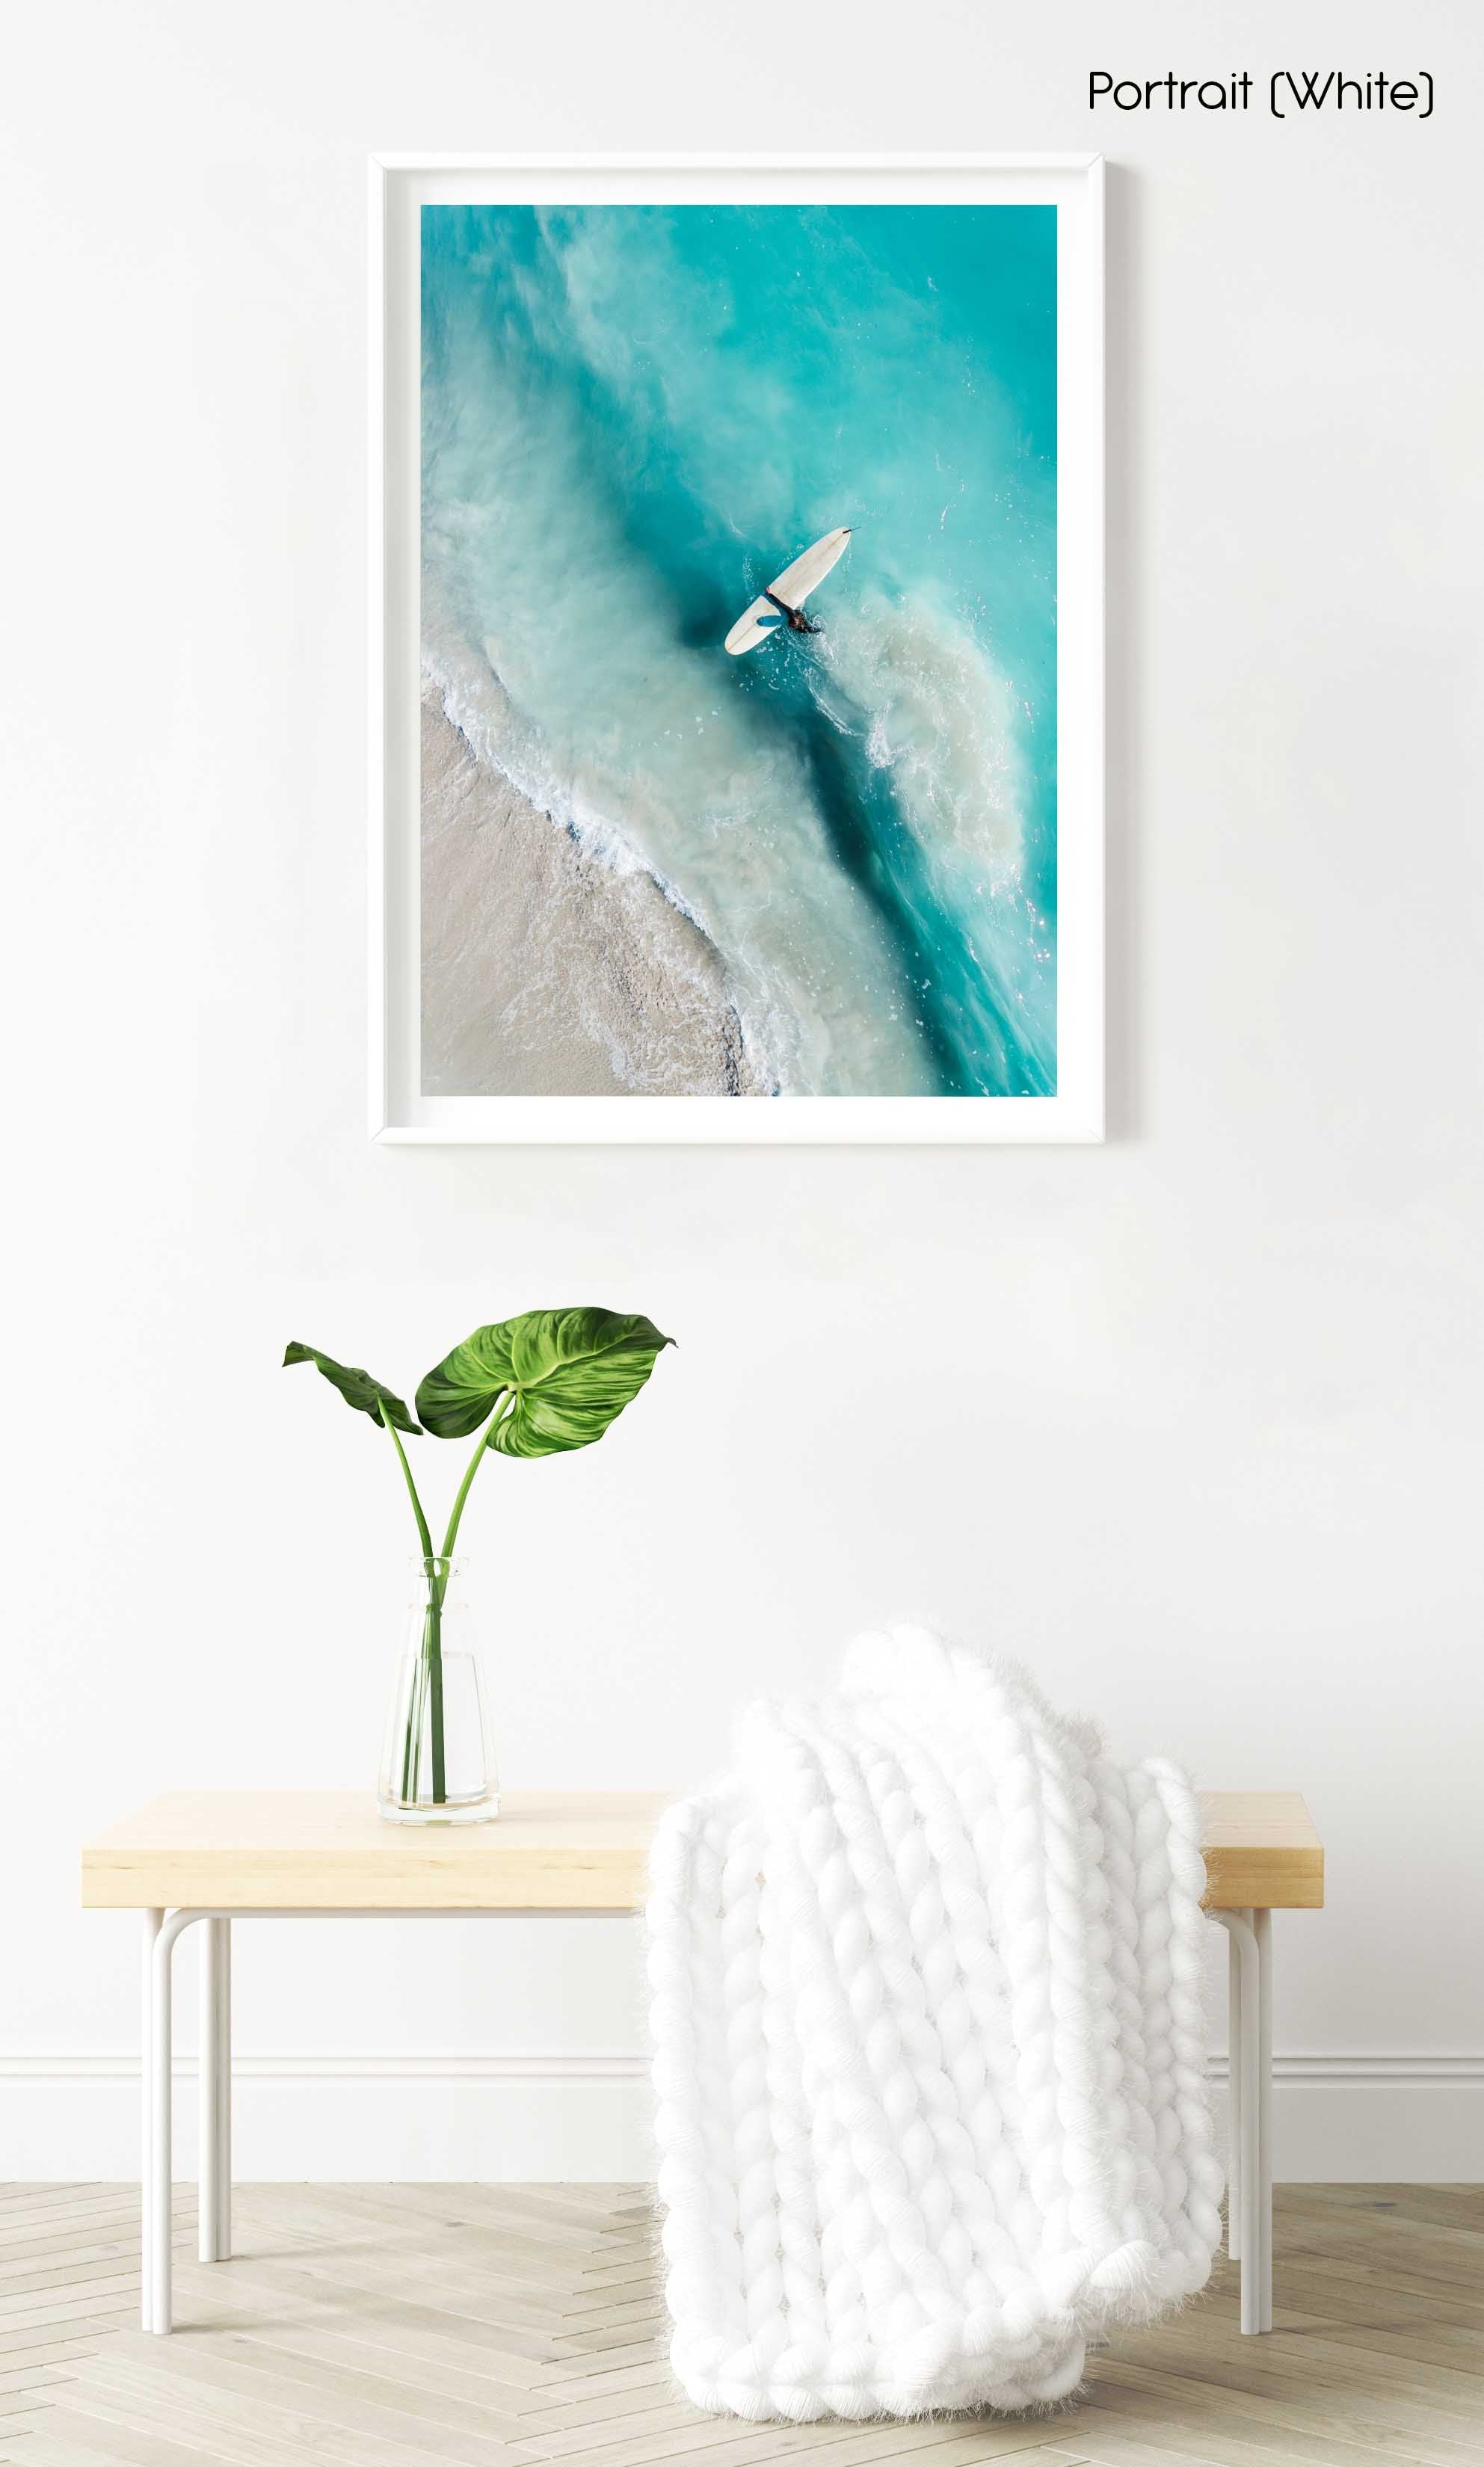 Girl walking back to shore with surfboard in blue water and waves in a white fine art frame